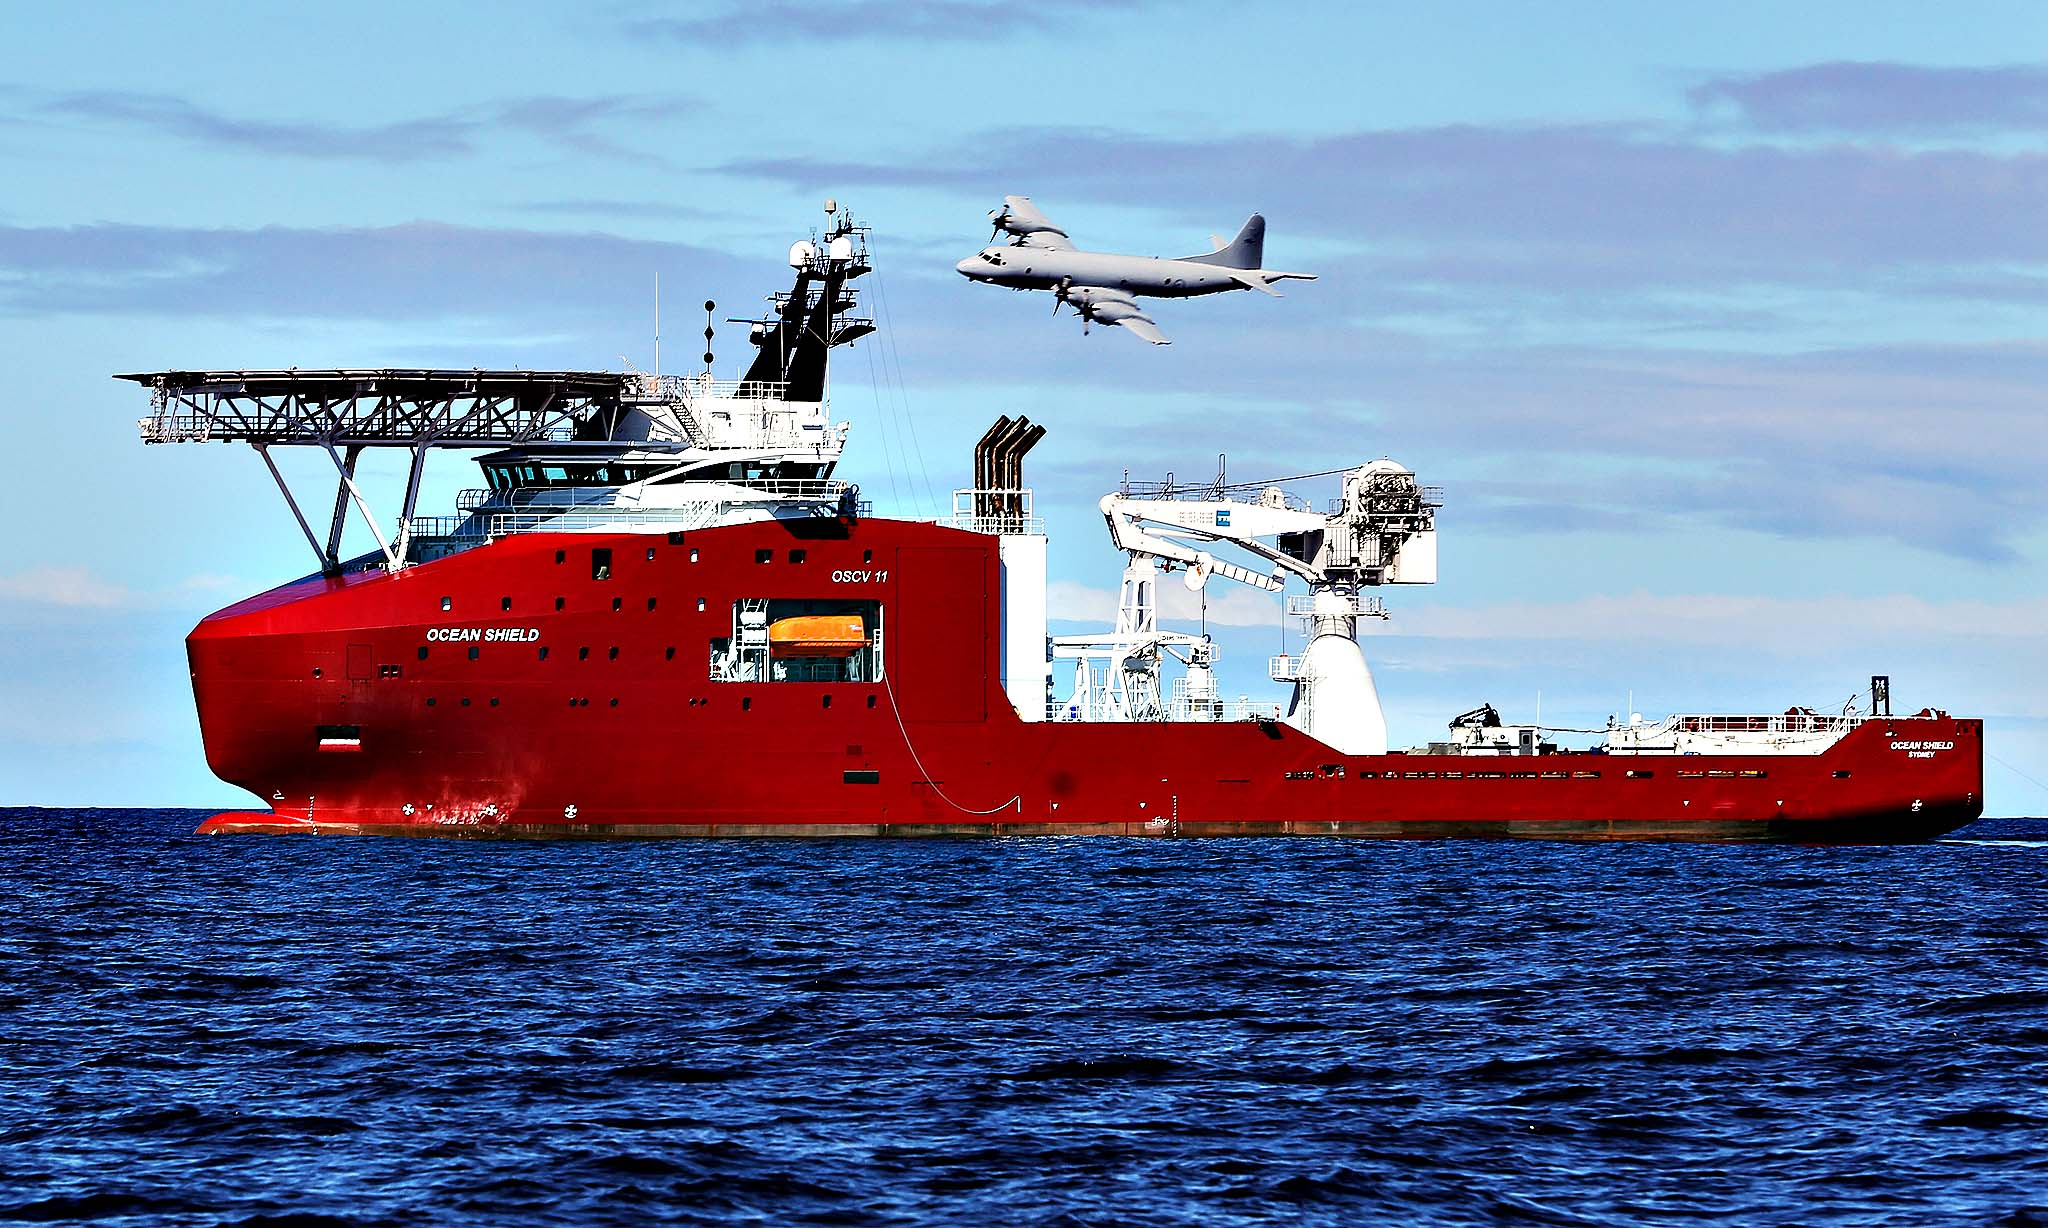 In this April 9, 2014 photo provided by the Australian Defense Force, a Royal Australian Air Force AP-3C Orion flies past Australian Defense vessel Ocean Shield on a mission to drop sonar buoys to assist in the acoustic search of the missing Malaysia Airlines Flight 370 in the southern Indian Ocean. The ship searching for the missing Malaysian jet has detected two more underwater signals that may be emanating from the aircraft's black boxes, and the Australian official in charge of the search expressed hope Wednesday that the plane's wreckage will soon be found.